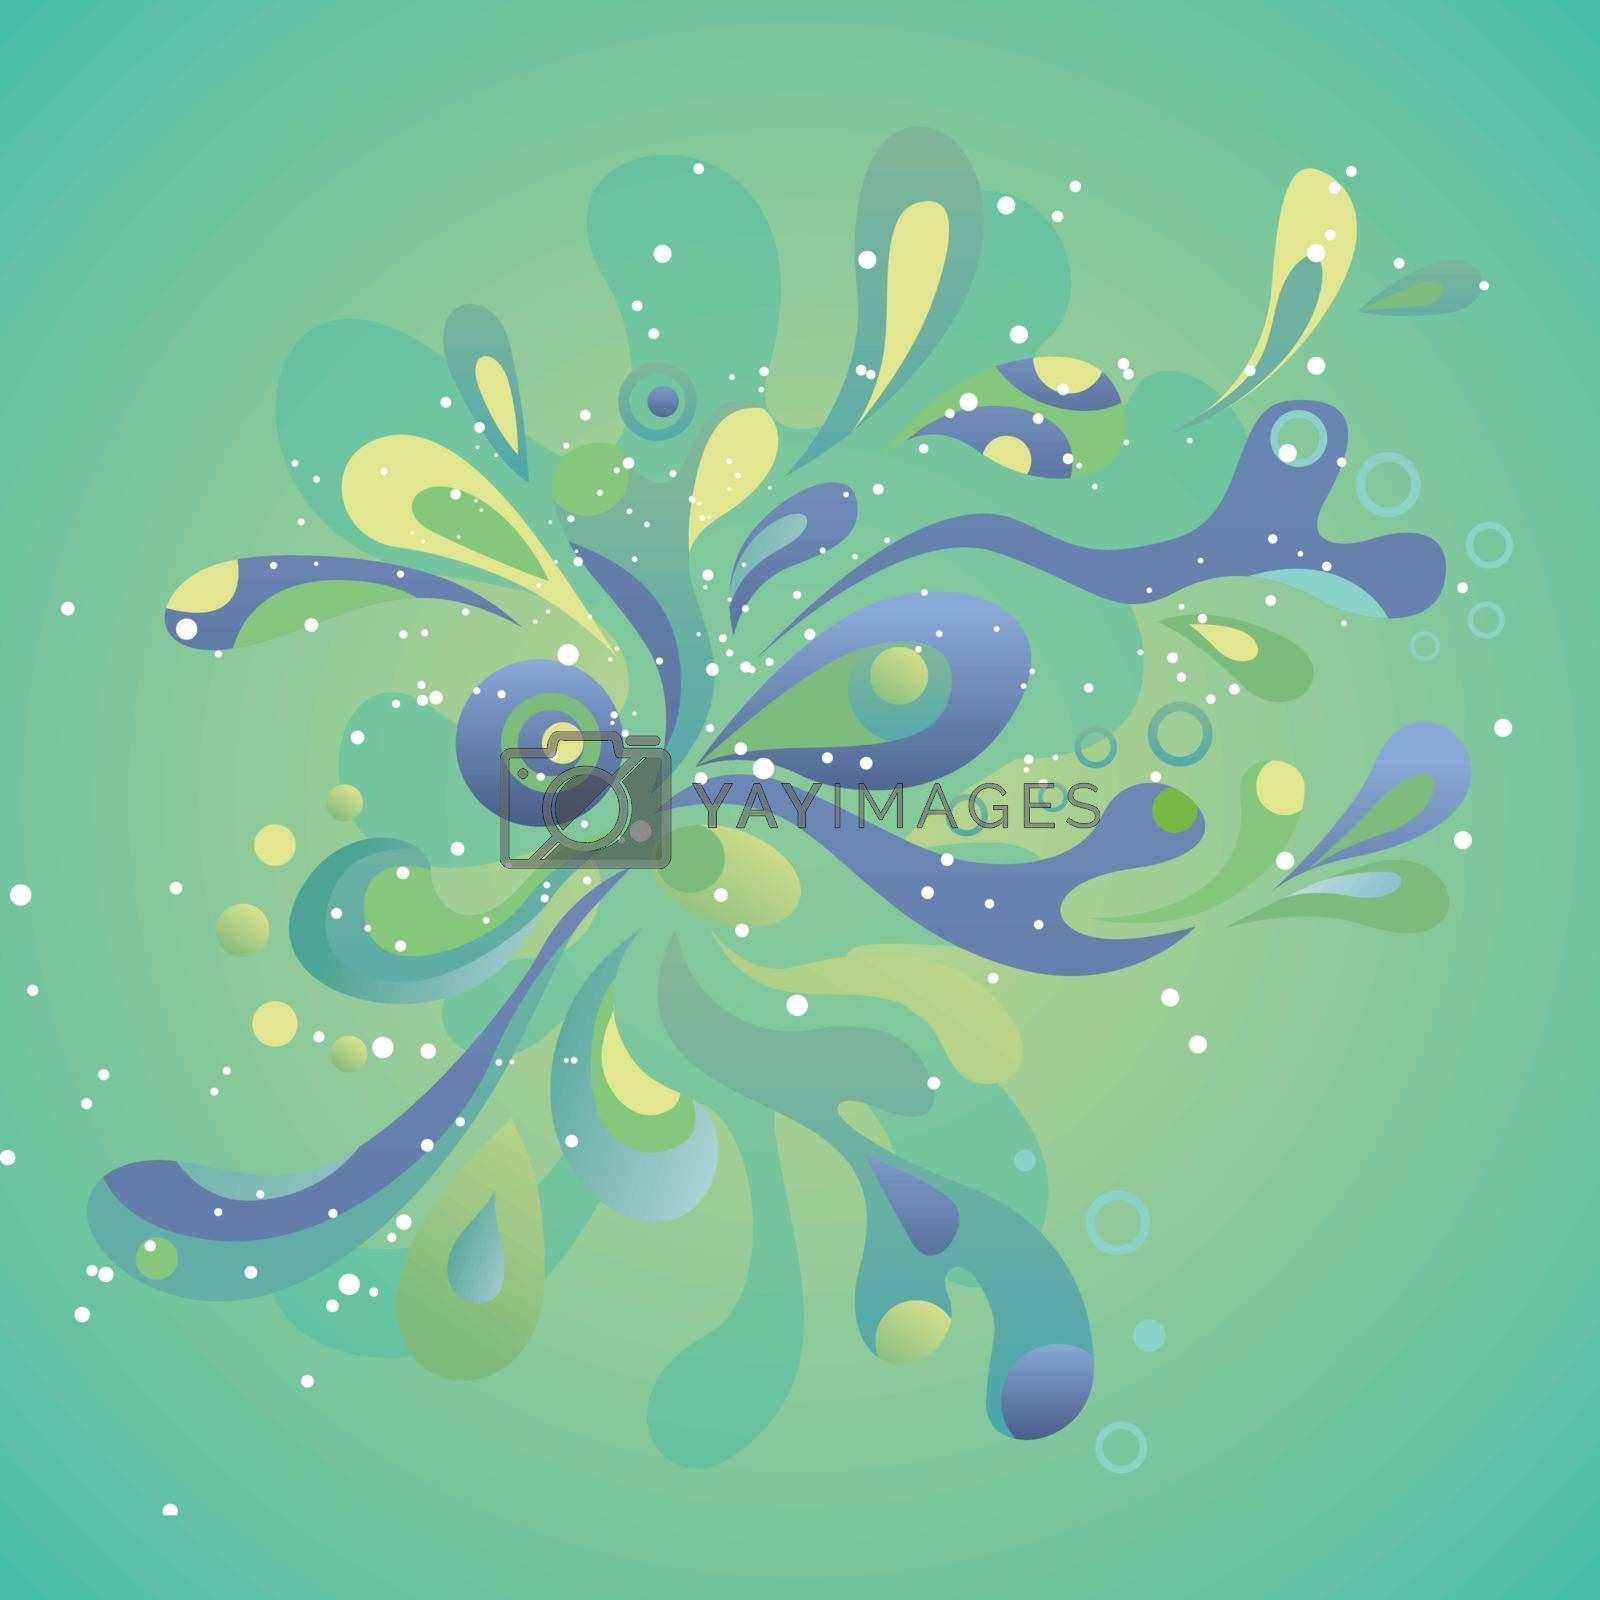 Royalty free image of Abstract splash background by kisika